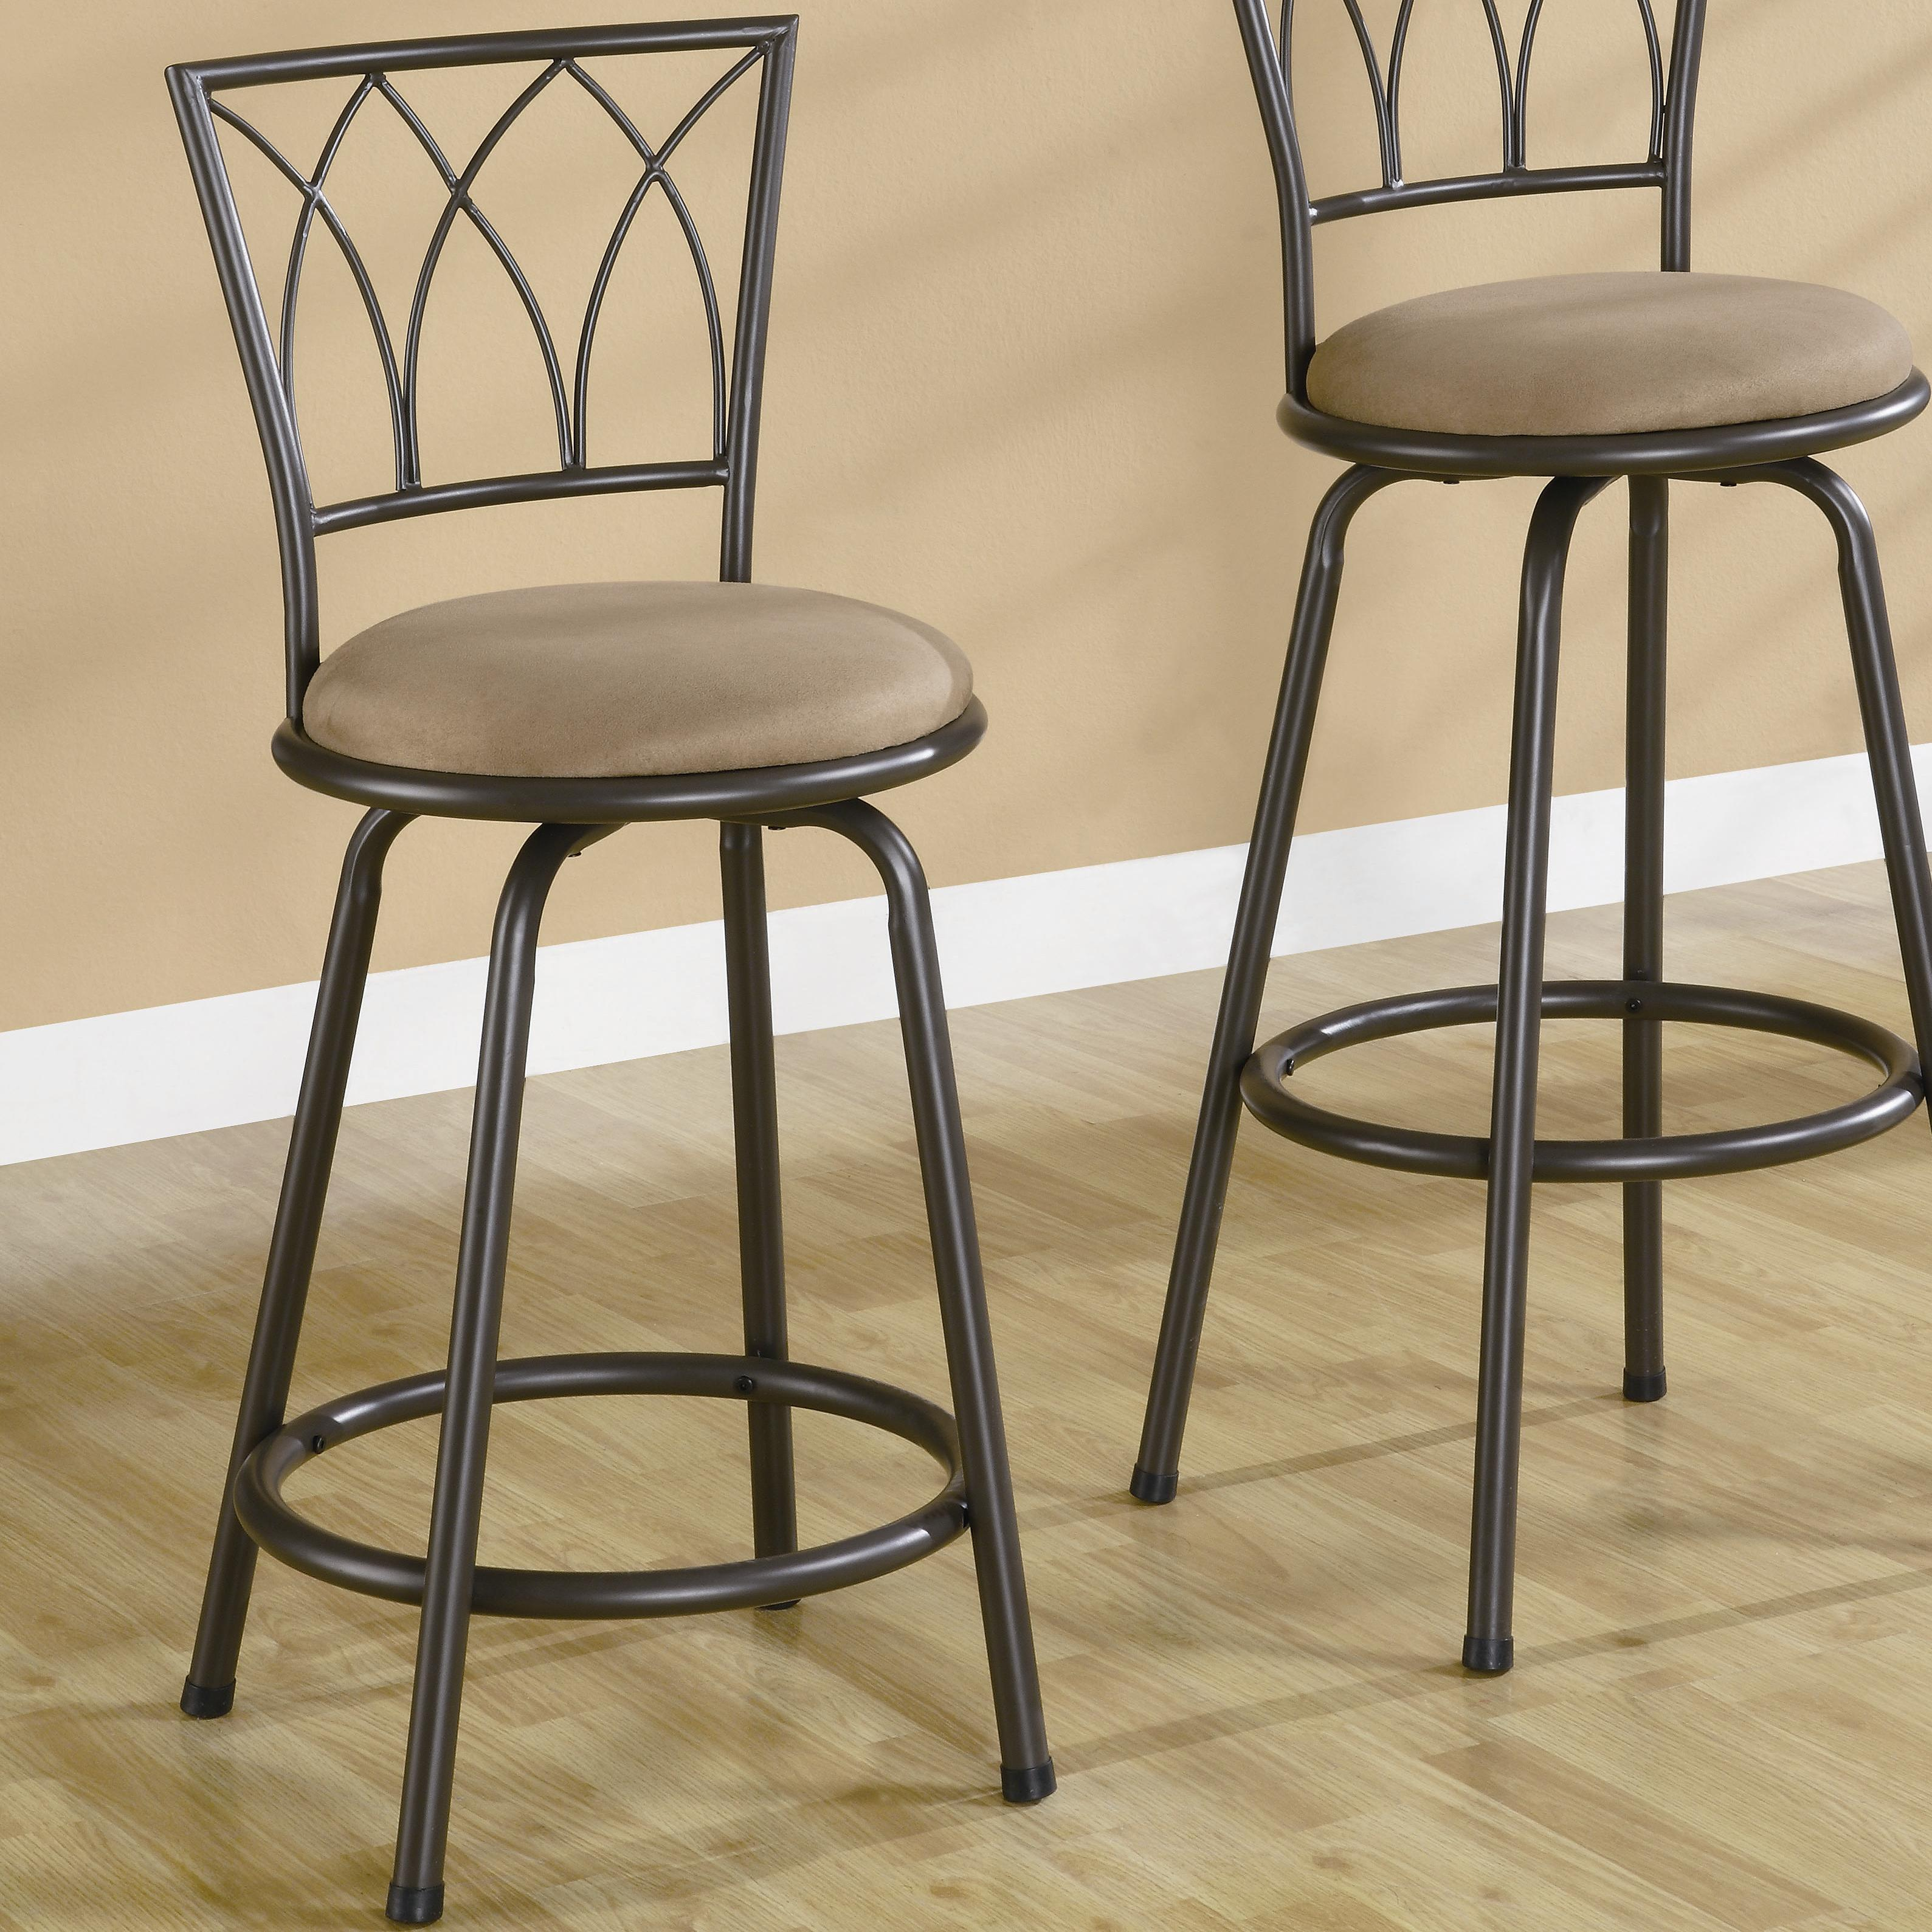 Bar Stools Chairs Coaster Dining Chairs And Bar Stools 122019 24 Quot Metal Bar